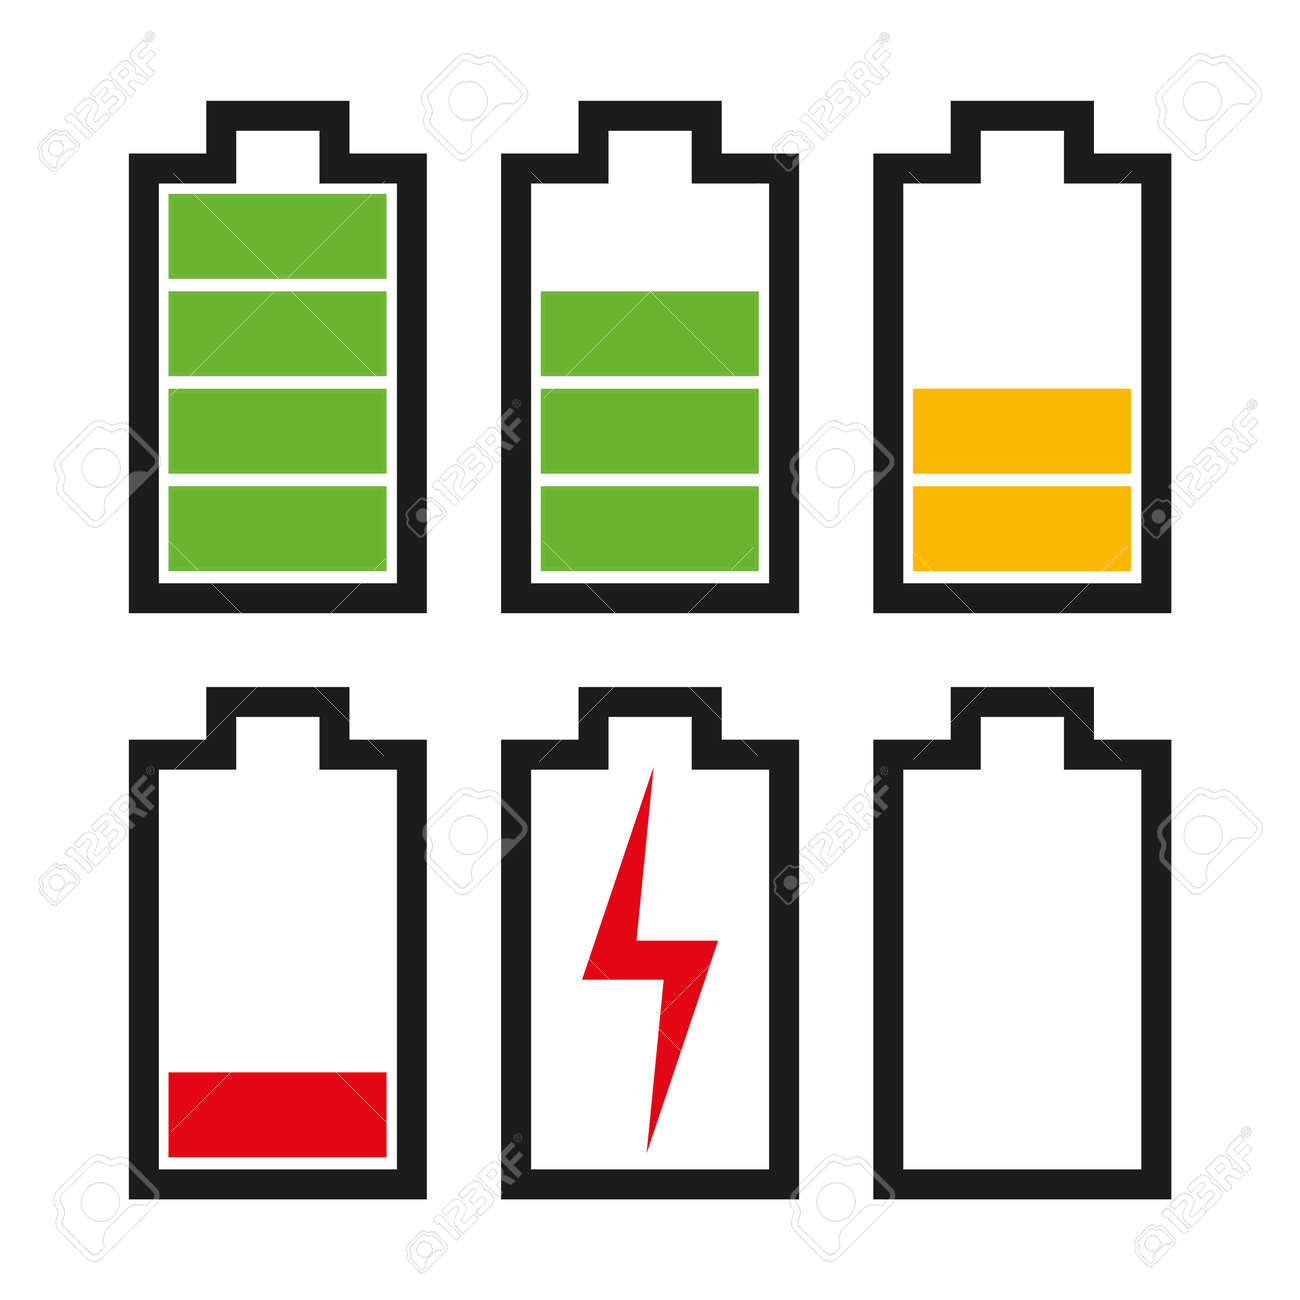 Icons sowing different charge status in an electric battery. Full charge, medium charge, low charge, empty, out of battery. - 53860646